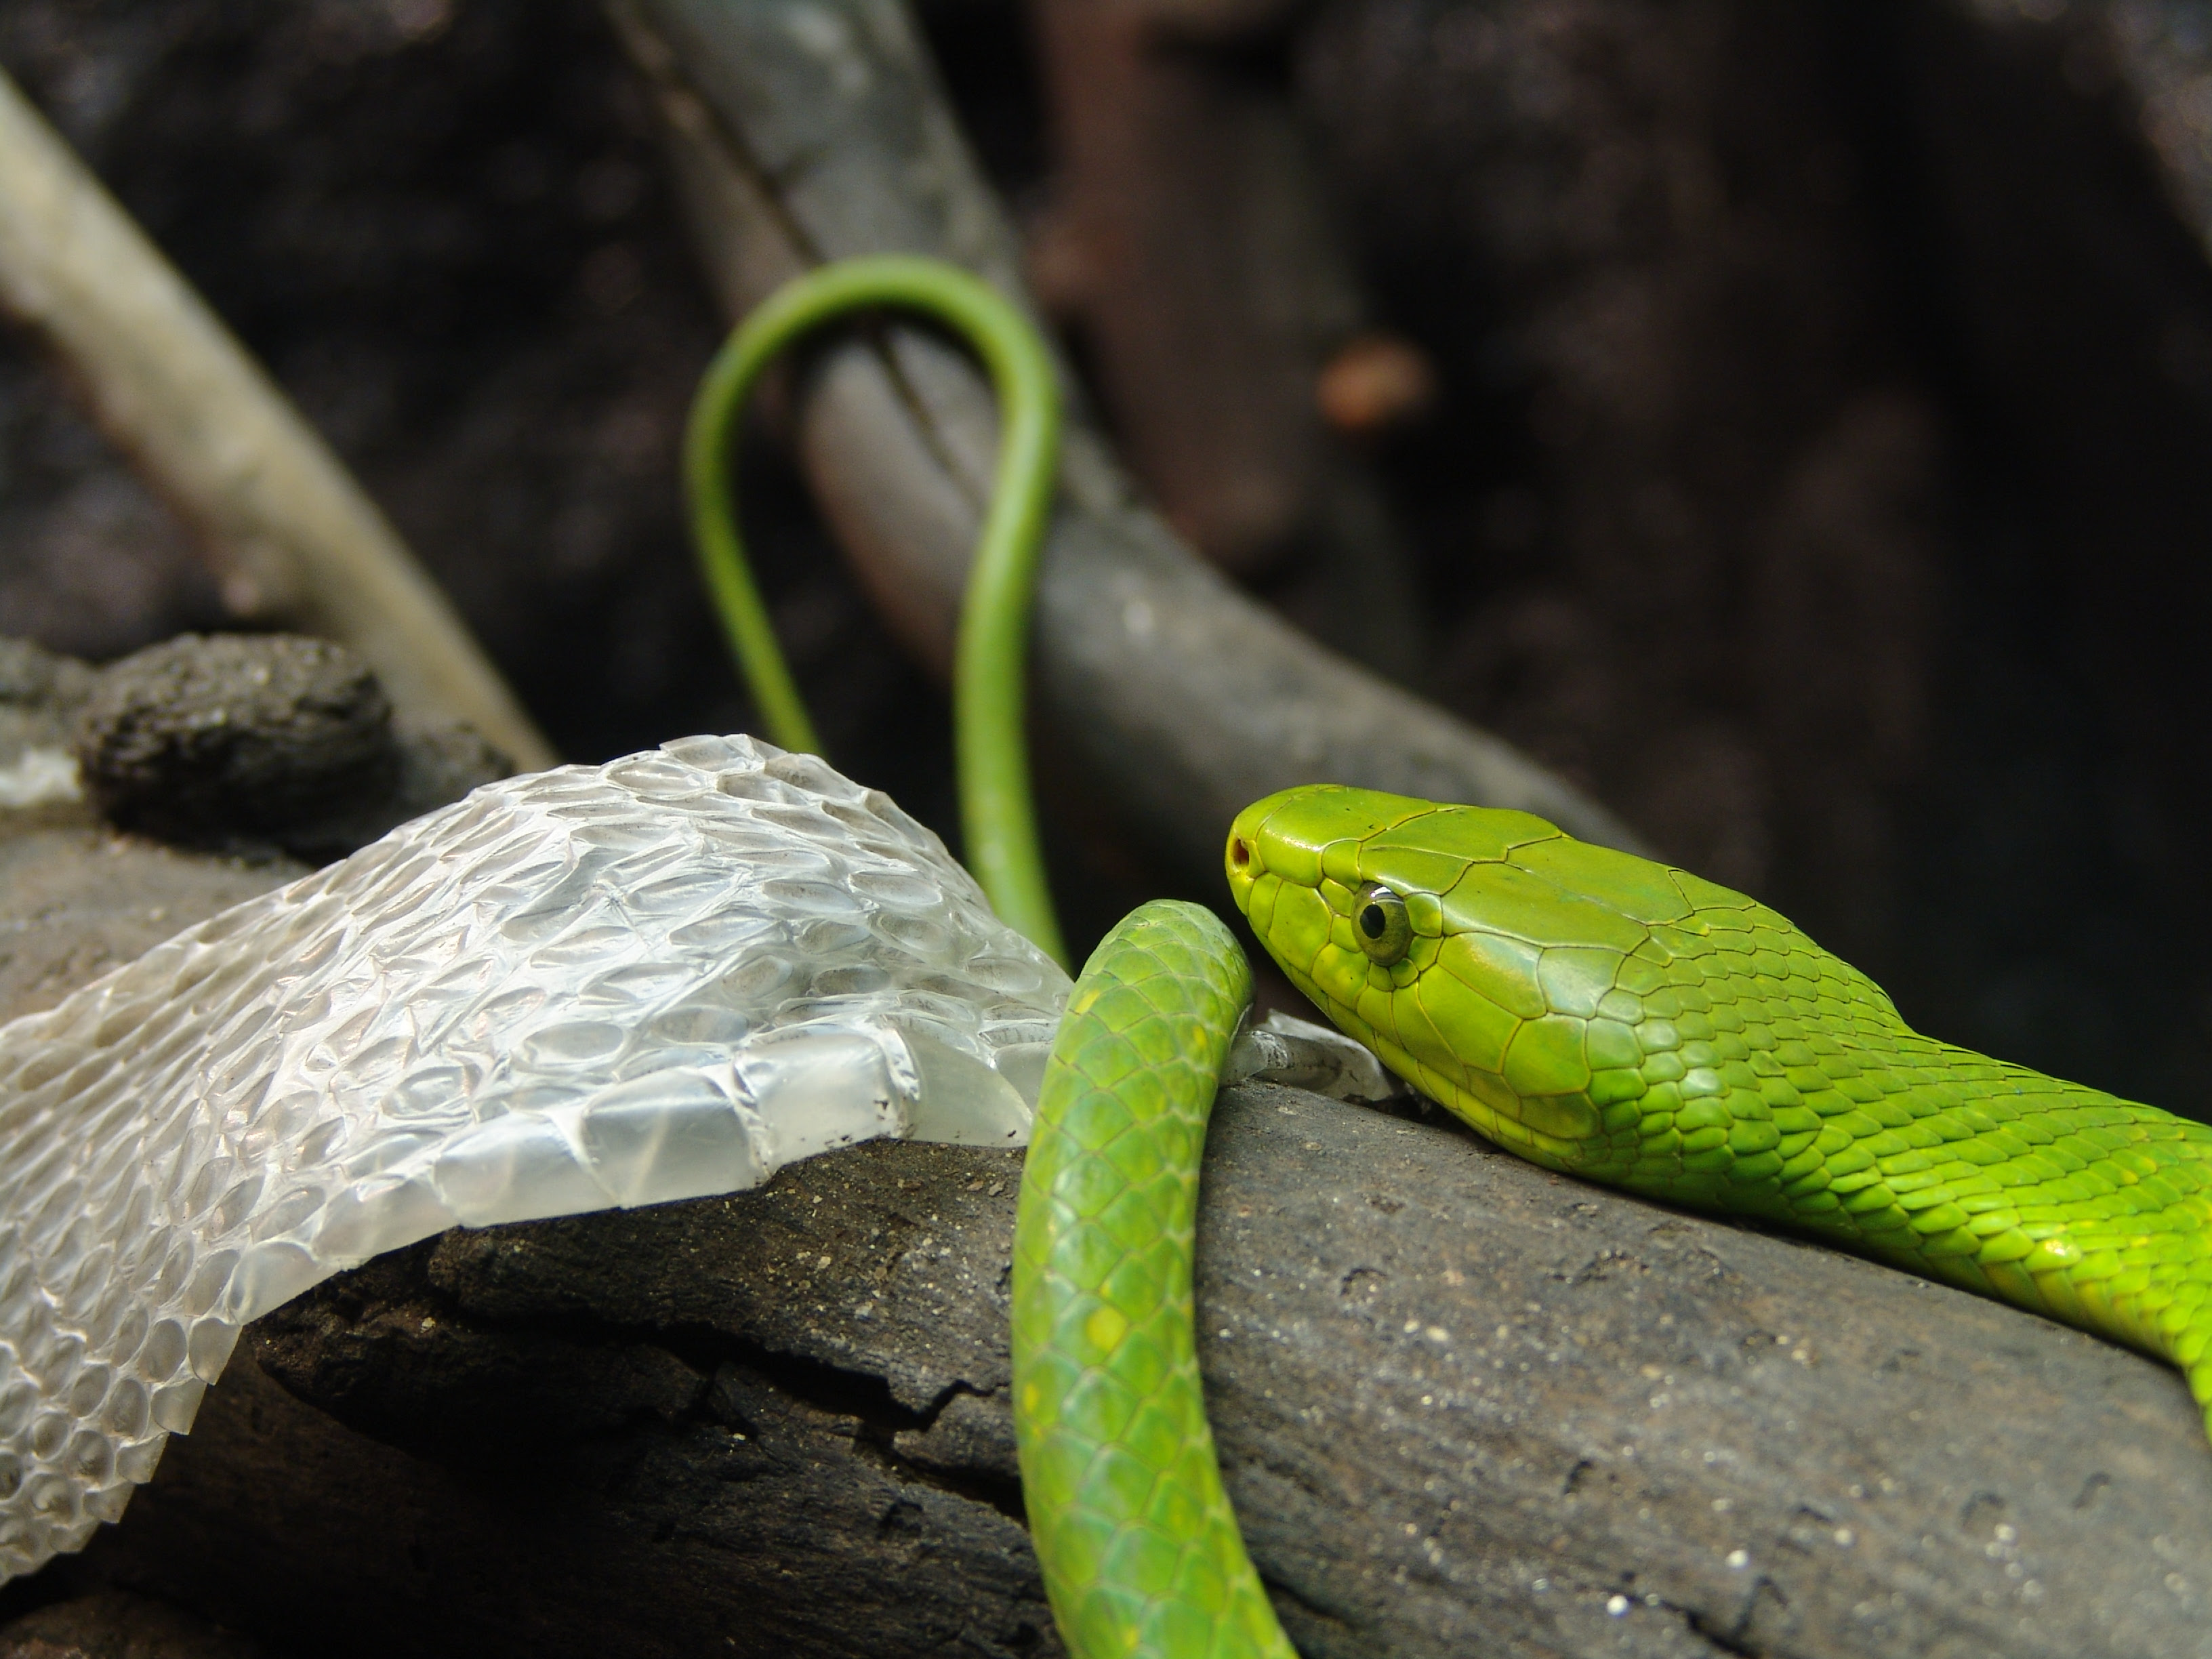 http://upload.wikimedia.org/wikipedia/commons/6/62/Eastern_Green_Mamba.jpg